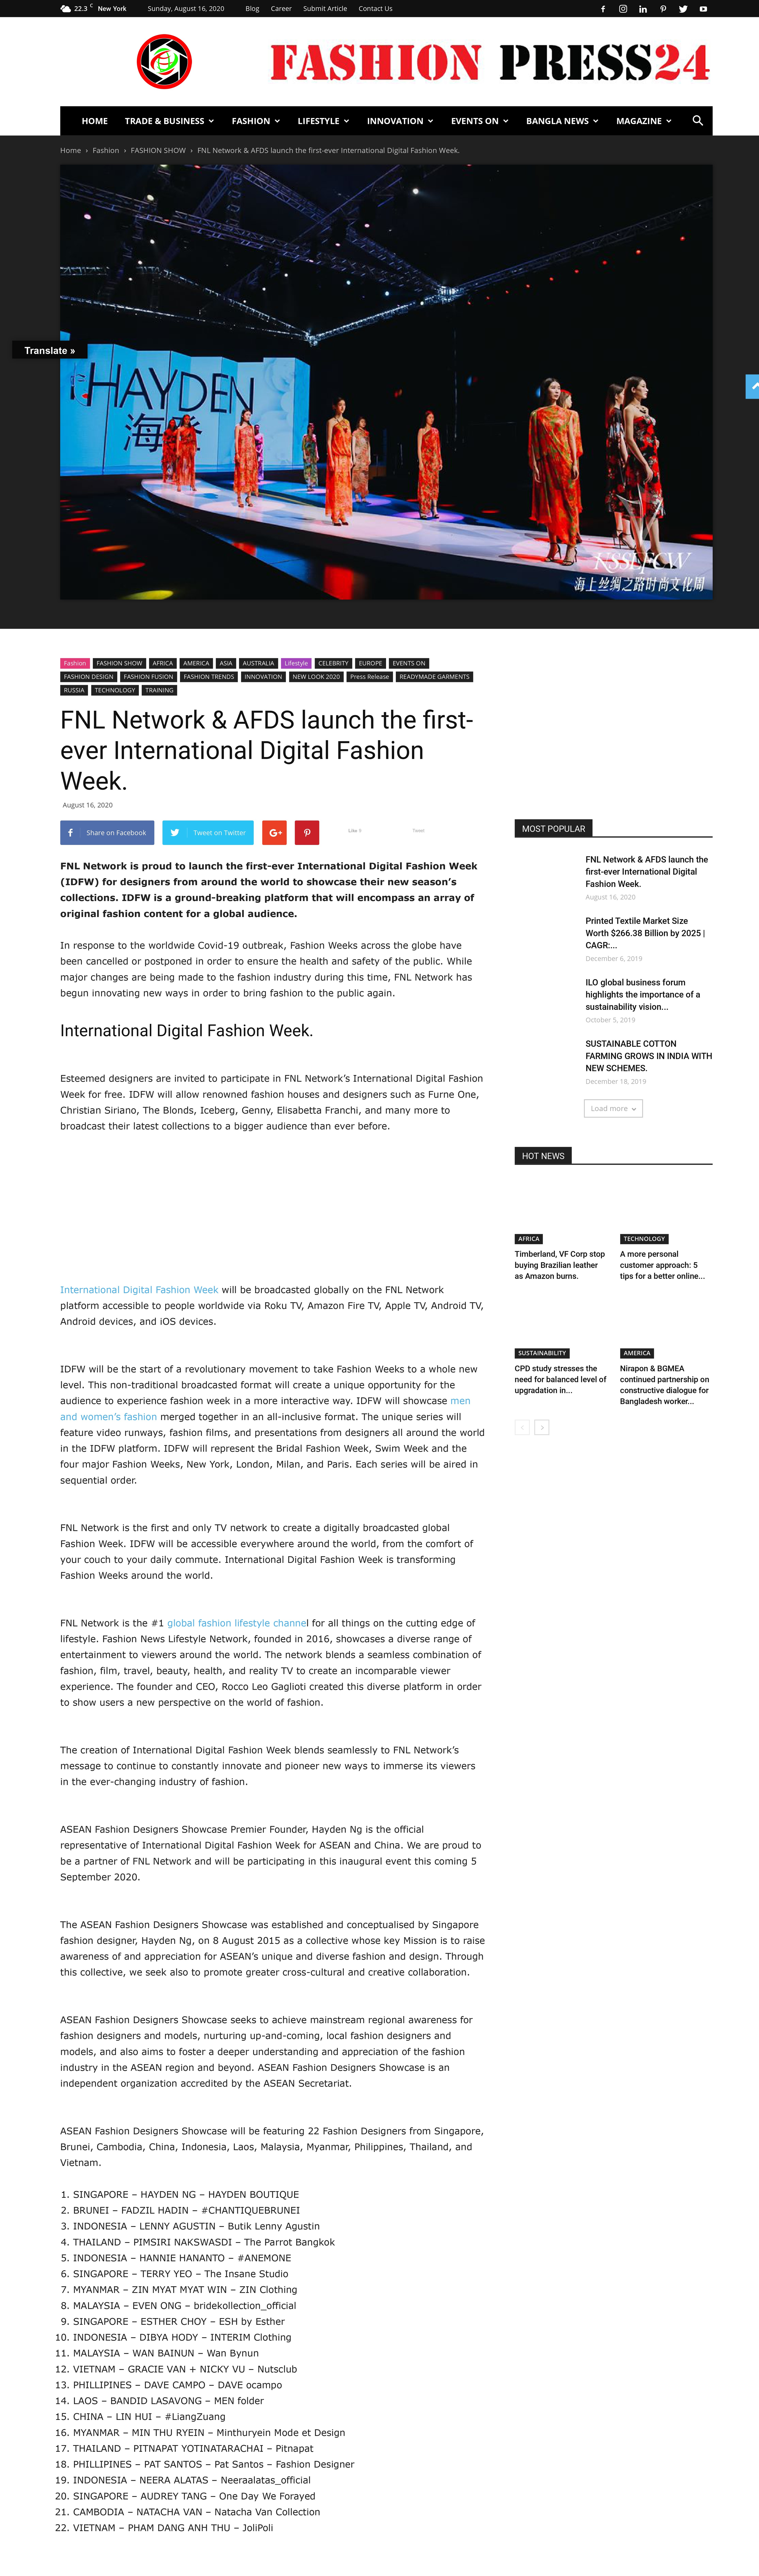 FNL Network & AFDS Launch The First-ever International Digital Fashion Week. _ FASHION PRESS24_page-0001